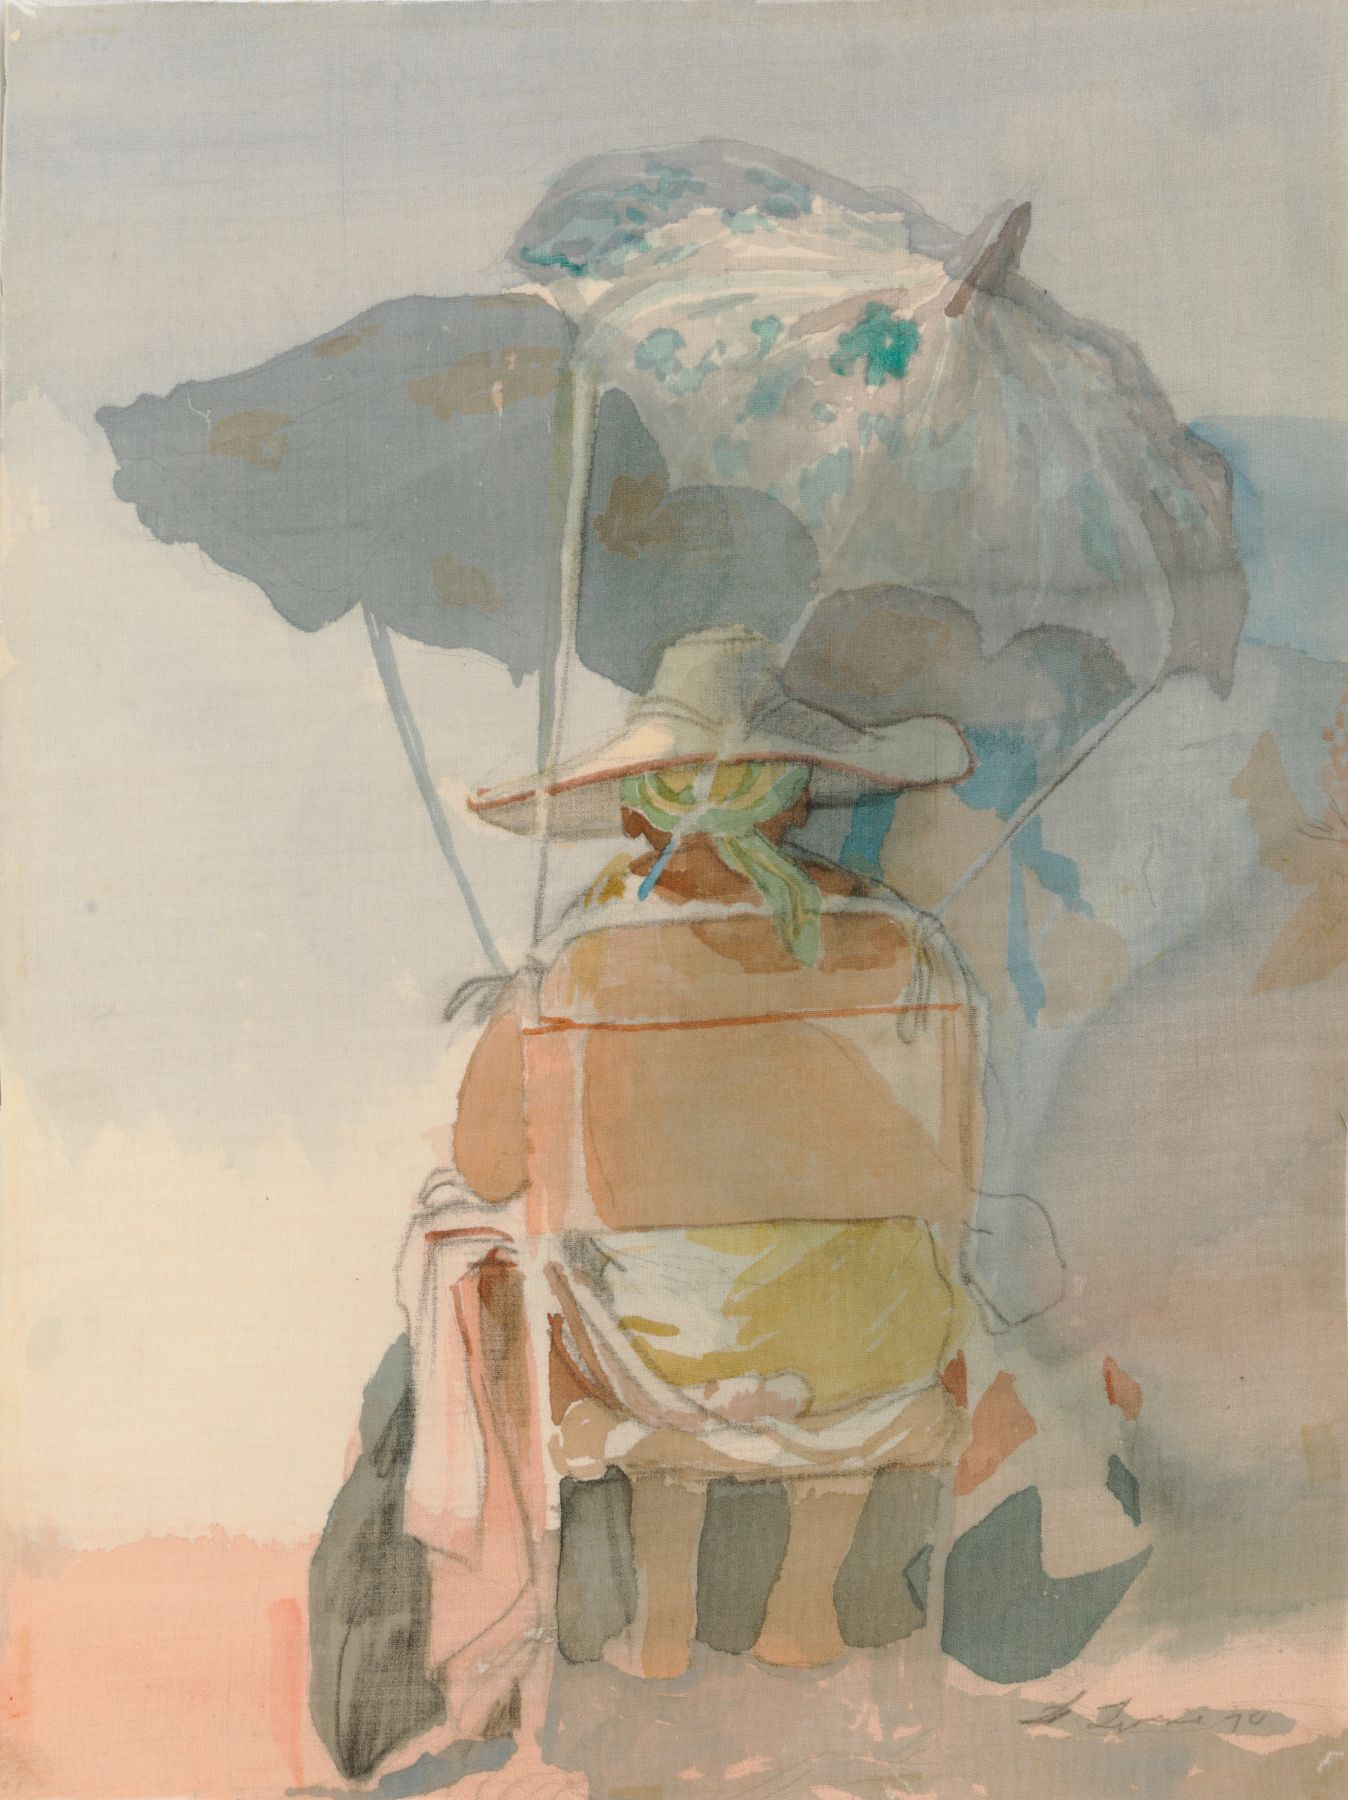 David Levine, Untitled (Beach Umbrella) [SOLD], 1984, watercolor on silk, 12 x 9 inches